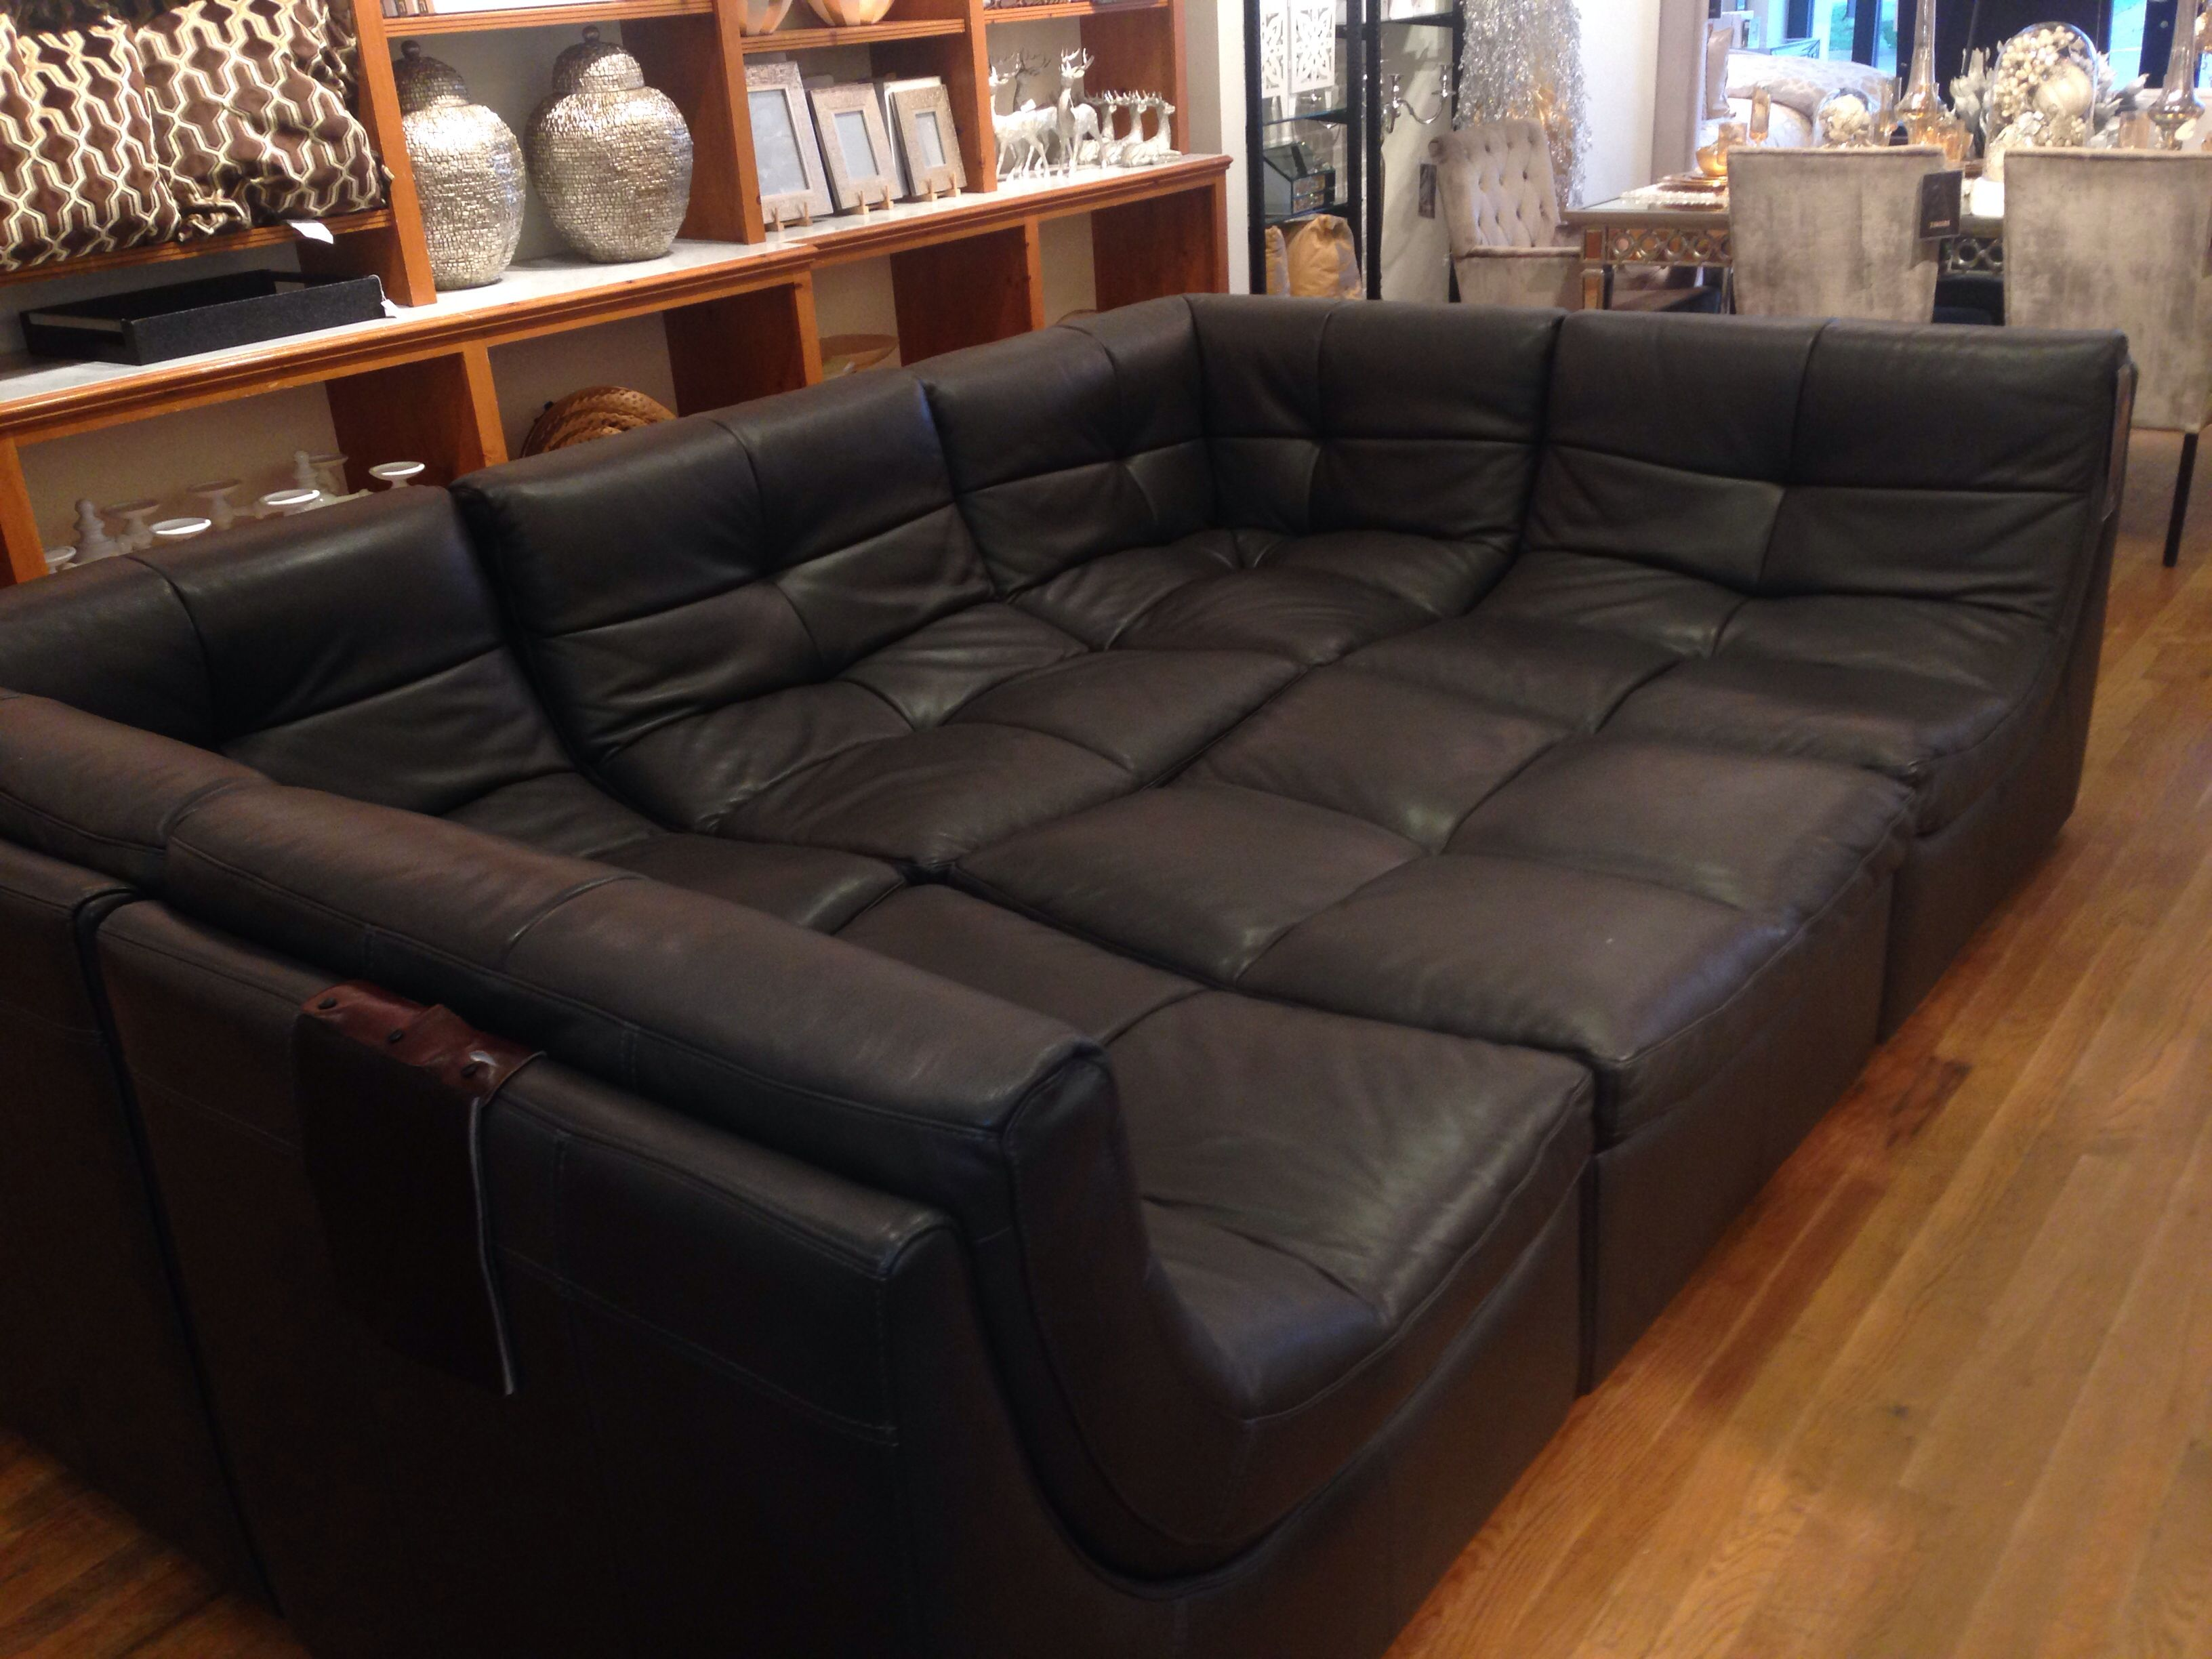 large couch sofa bed ebay beds for my place pinterest movie rooms